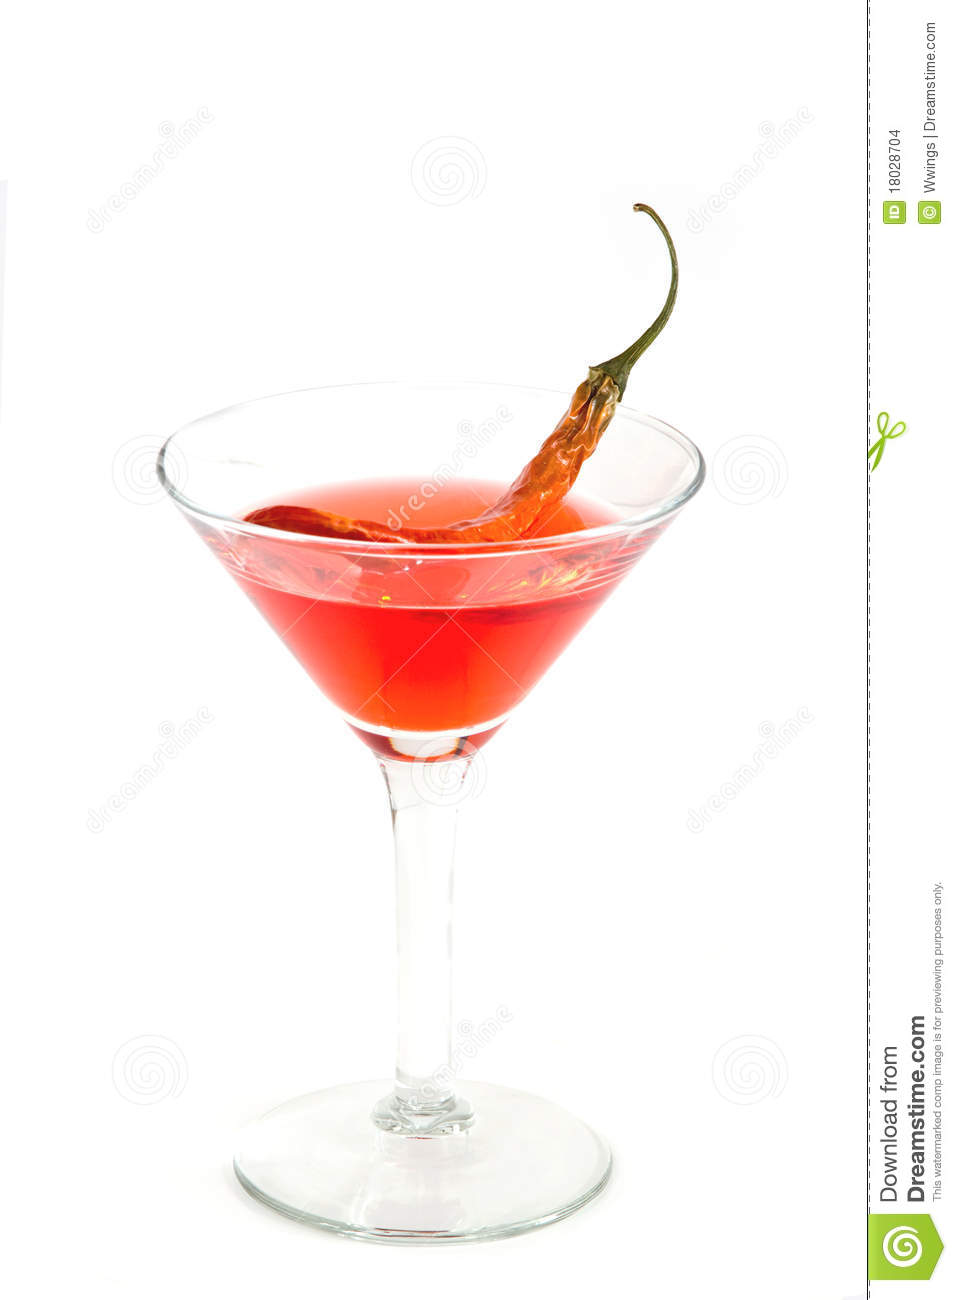 spa red chile martini chocolate chili martini martini with a red chili ...